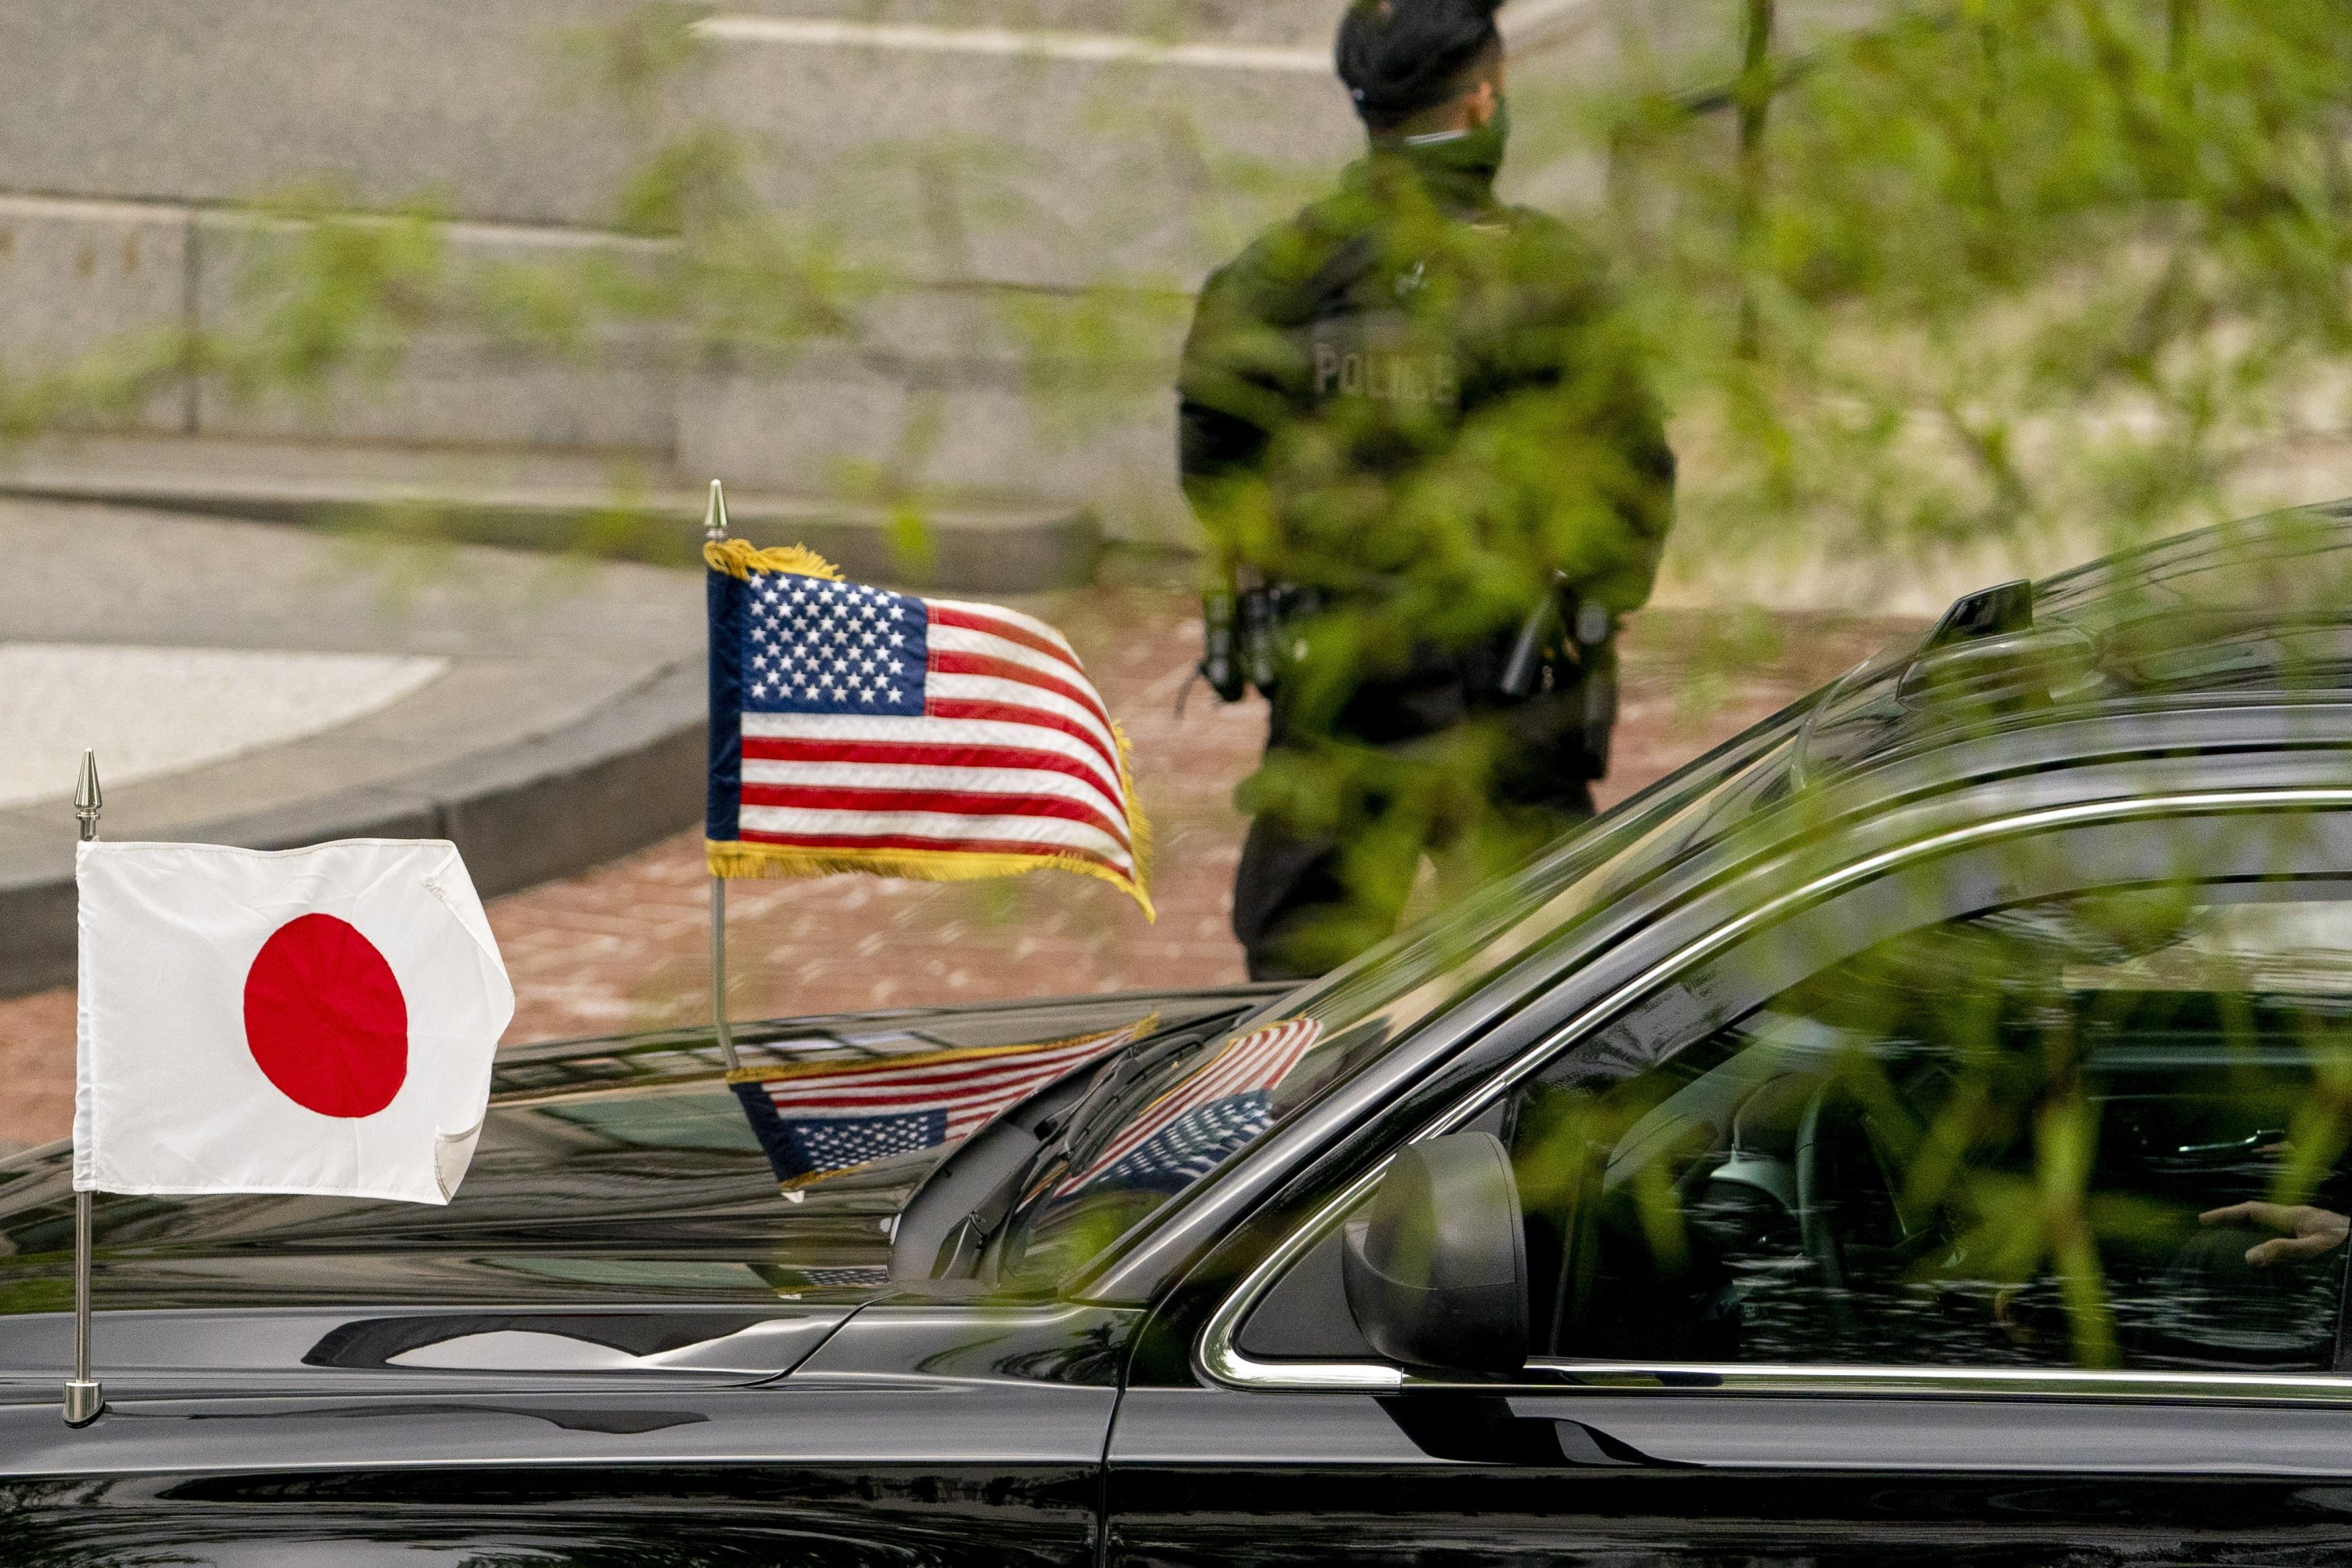 The car carrying Japanese Prime Minister Yoshihide Suga arrives for a meeting with Vice President Kamala Harris, at the Eisenhower Executive Office Building on the White House campus in Washington, U.S., April 16, 2021. (AP Photo)